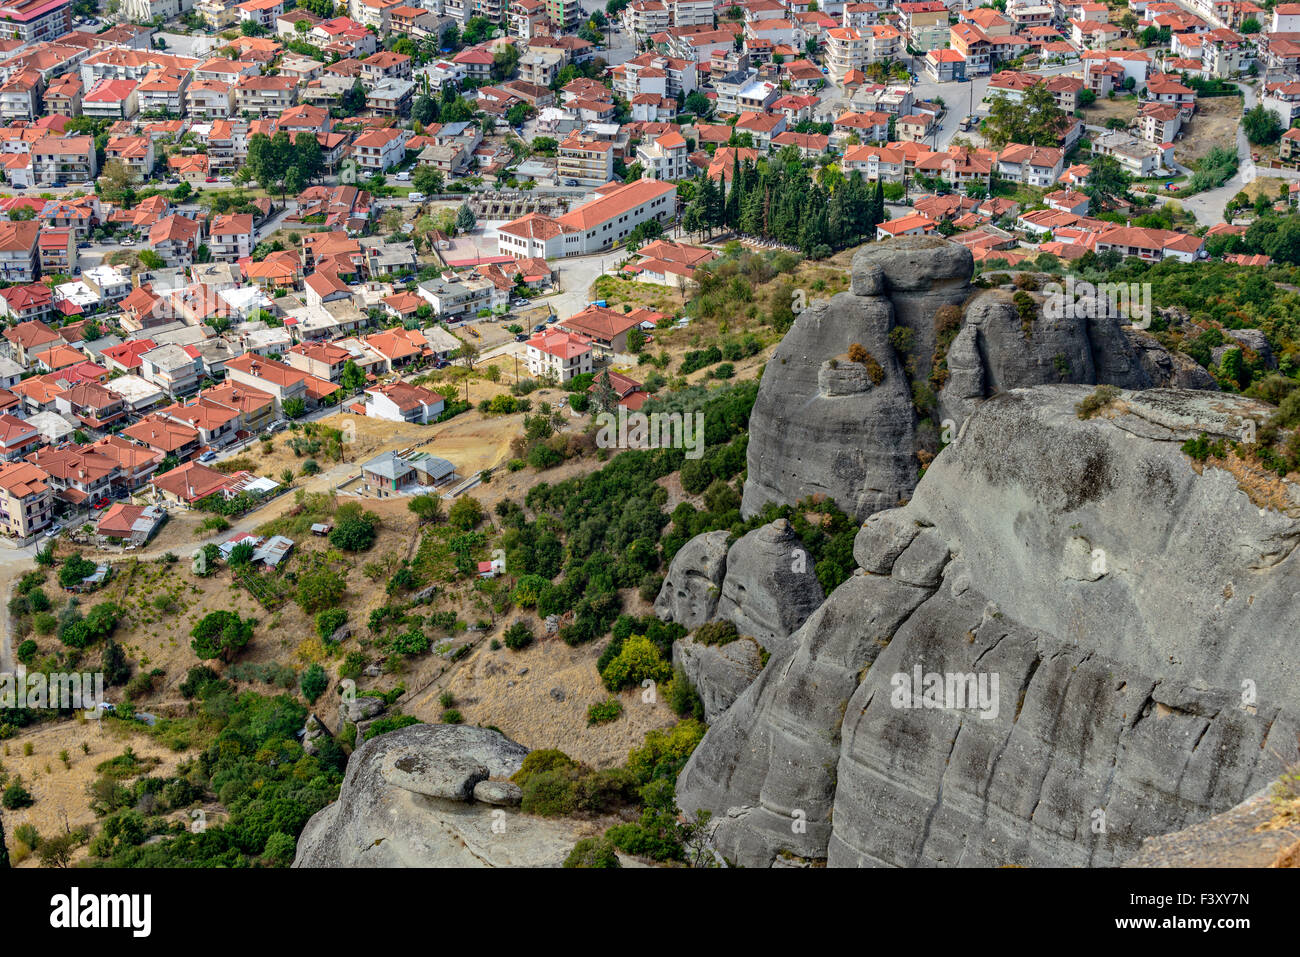 Aerial view of small town in Greece - Stock Image